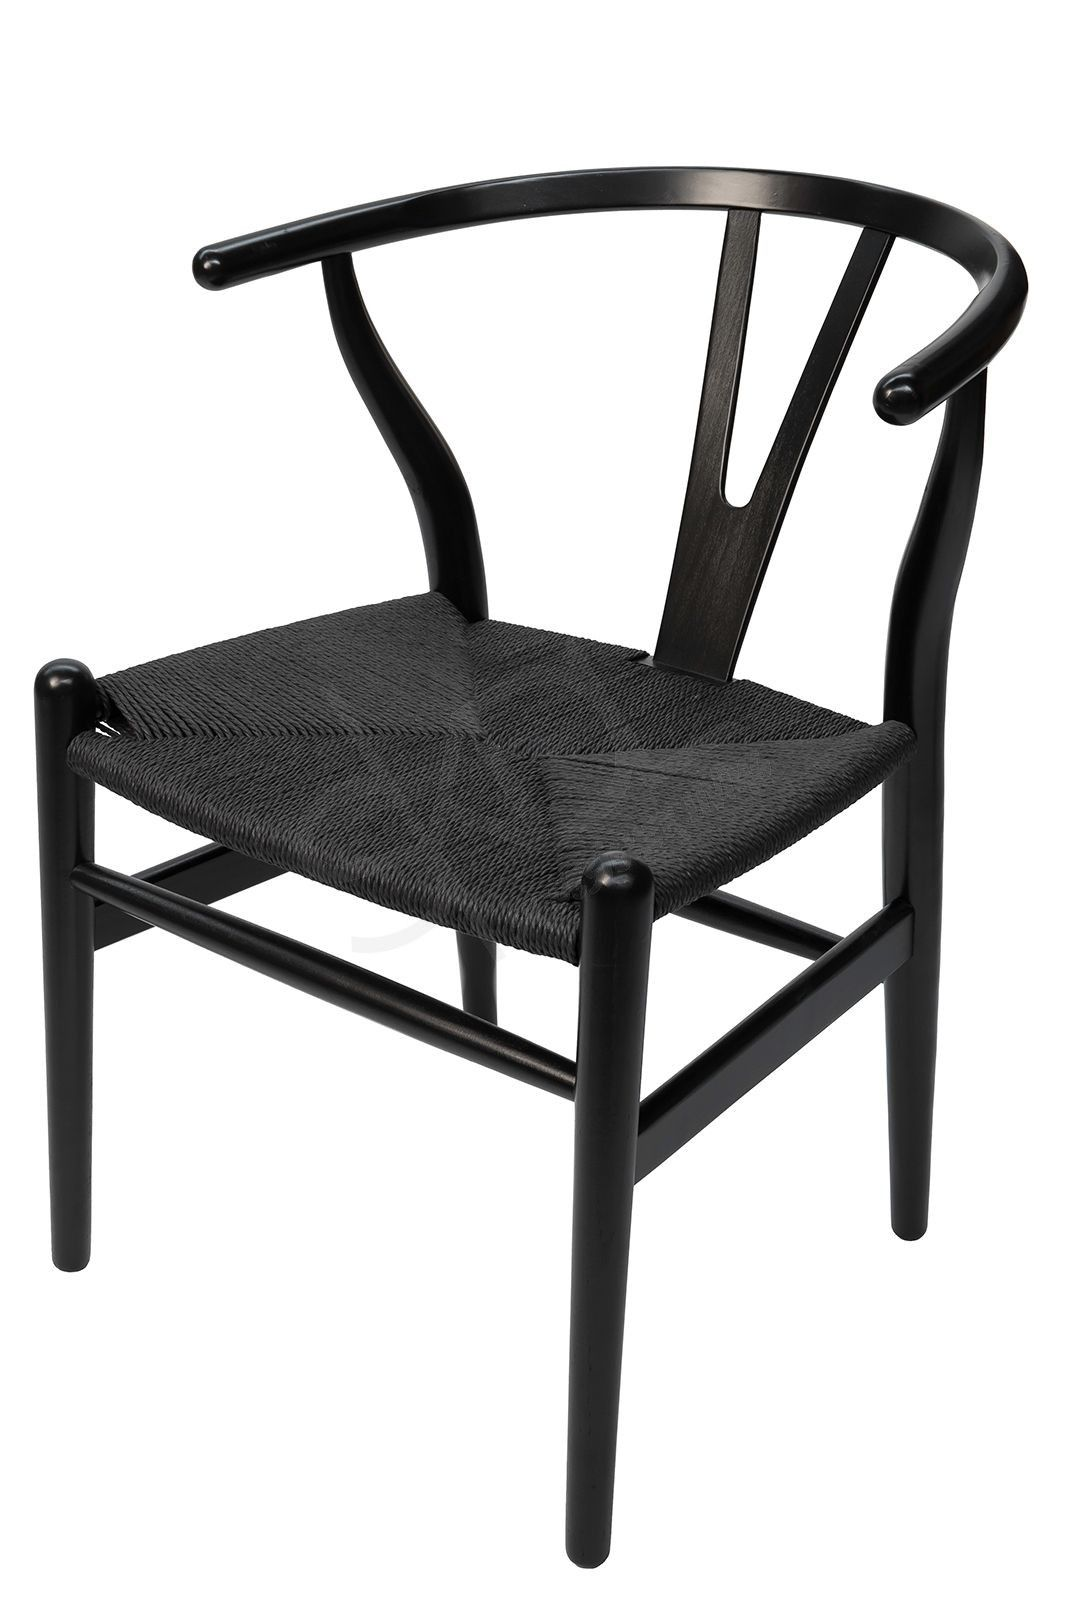 Replica Hans Wegner Wishbone Chair Black wishbone chair